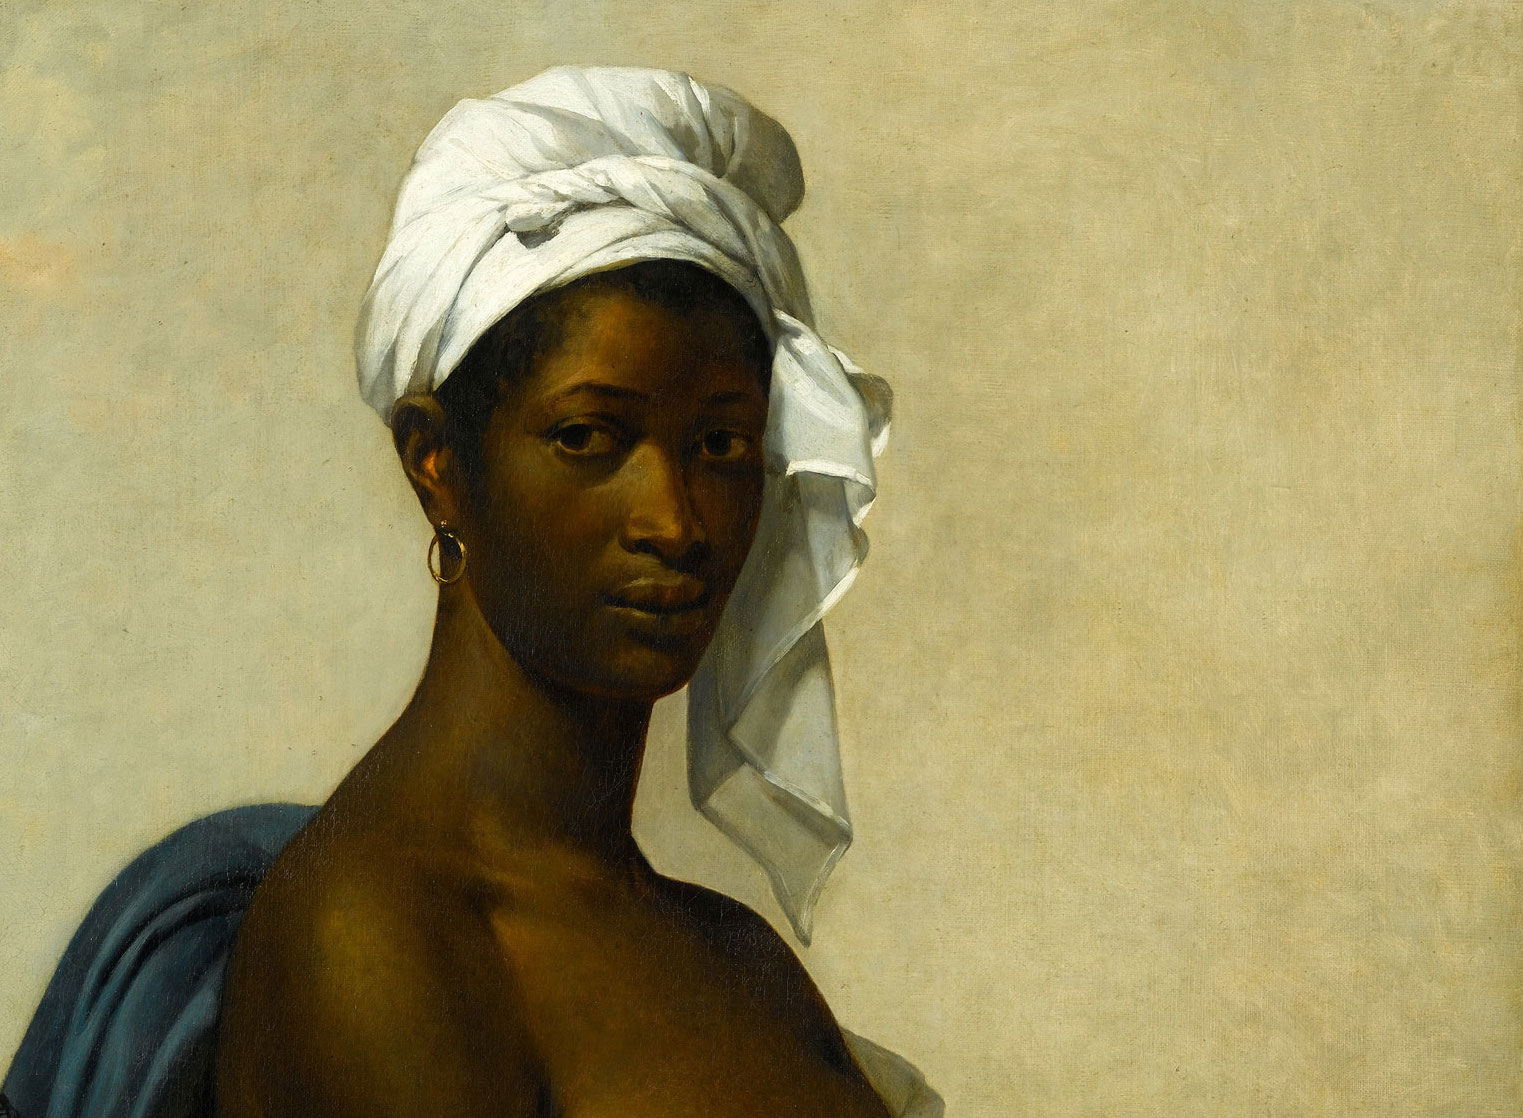 In Paris, 'Black Models' Show Offers Essential Insights on Figures Excluded From Art History